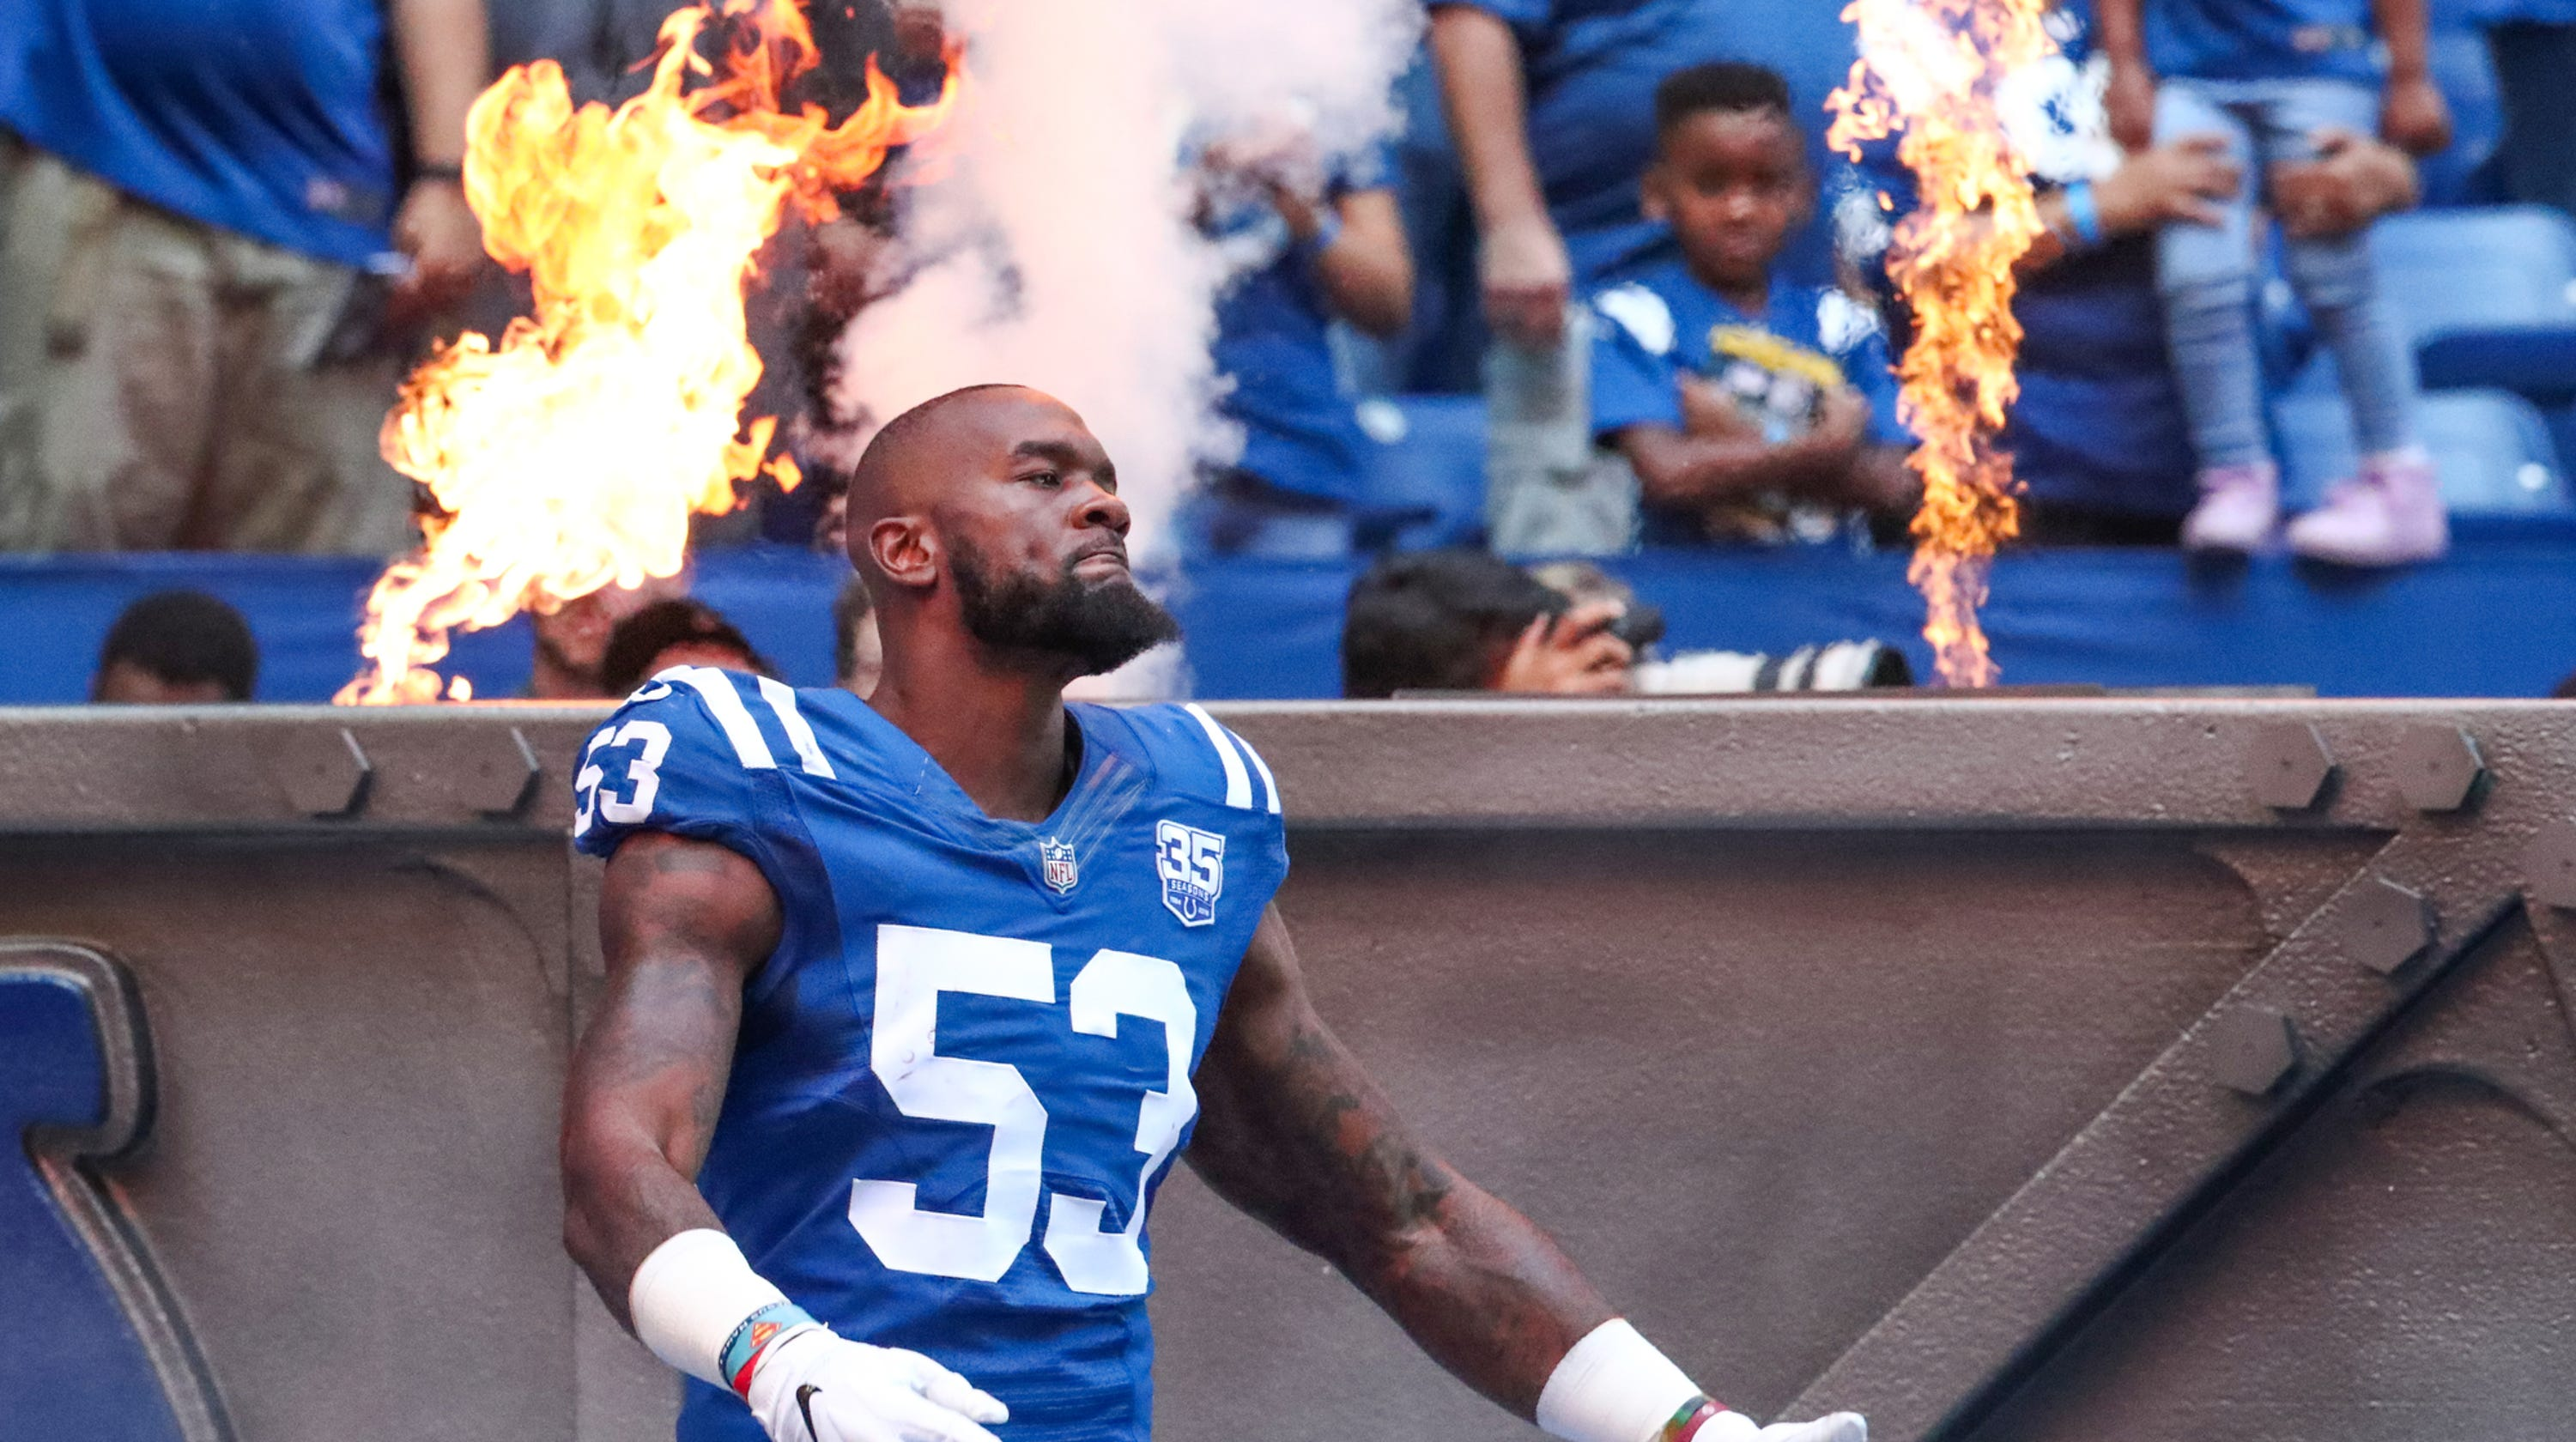 reputable site 08d65 191ab How a life filled with tragedy shaped Colts rookie LB Darius ...